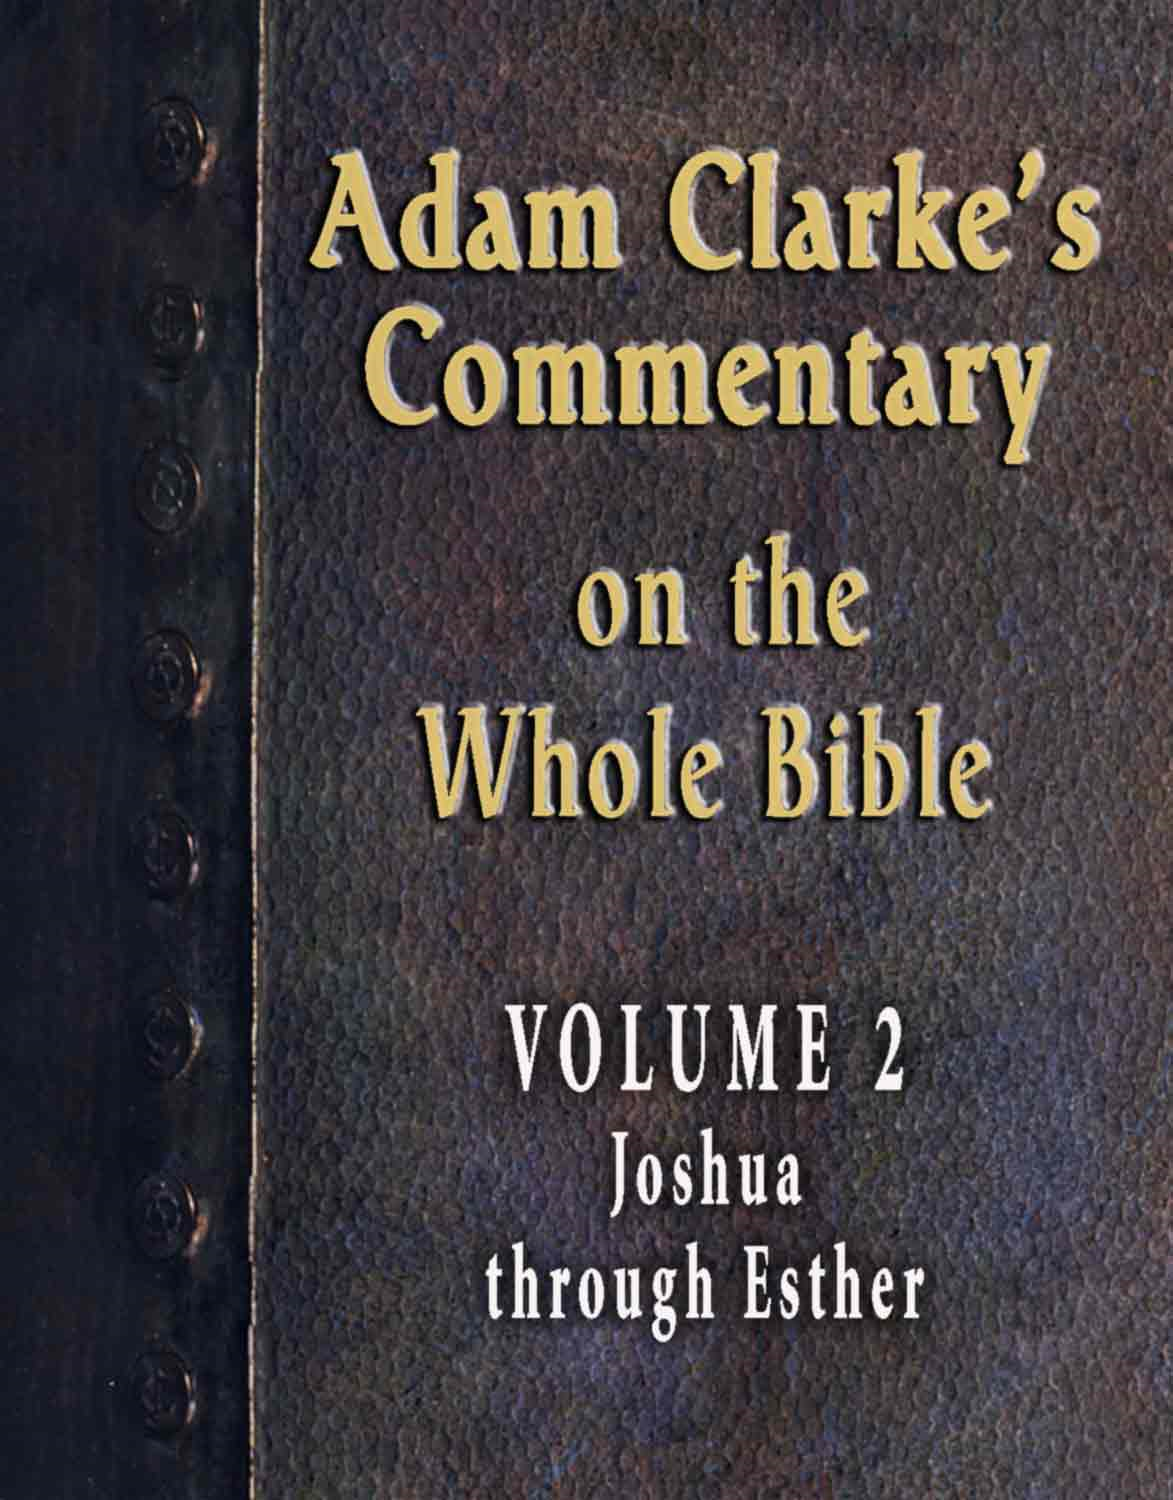 Adam Clarke's Commentary on the Whole Bible-Volume 2-Joshua through Esther